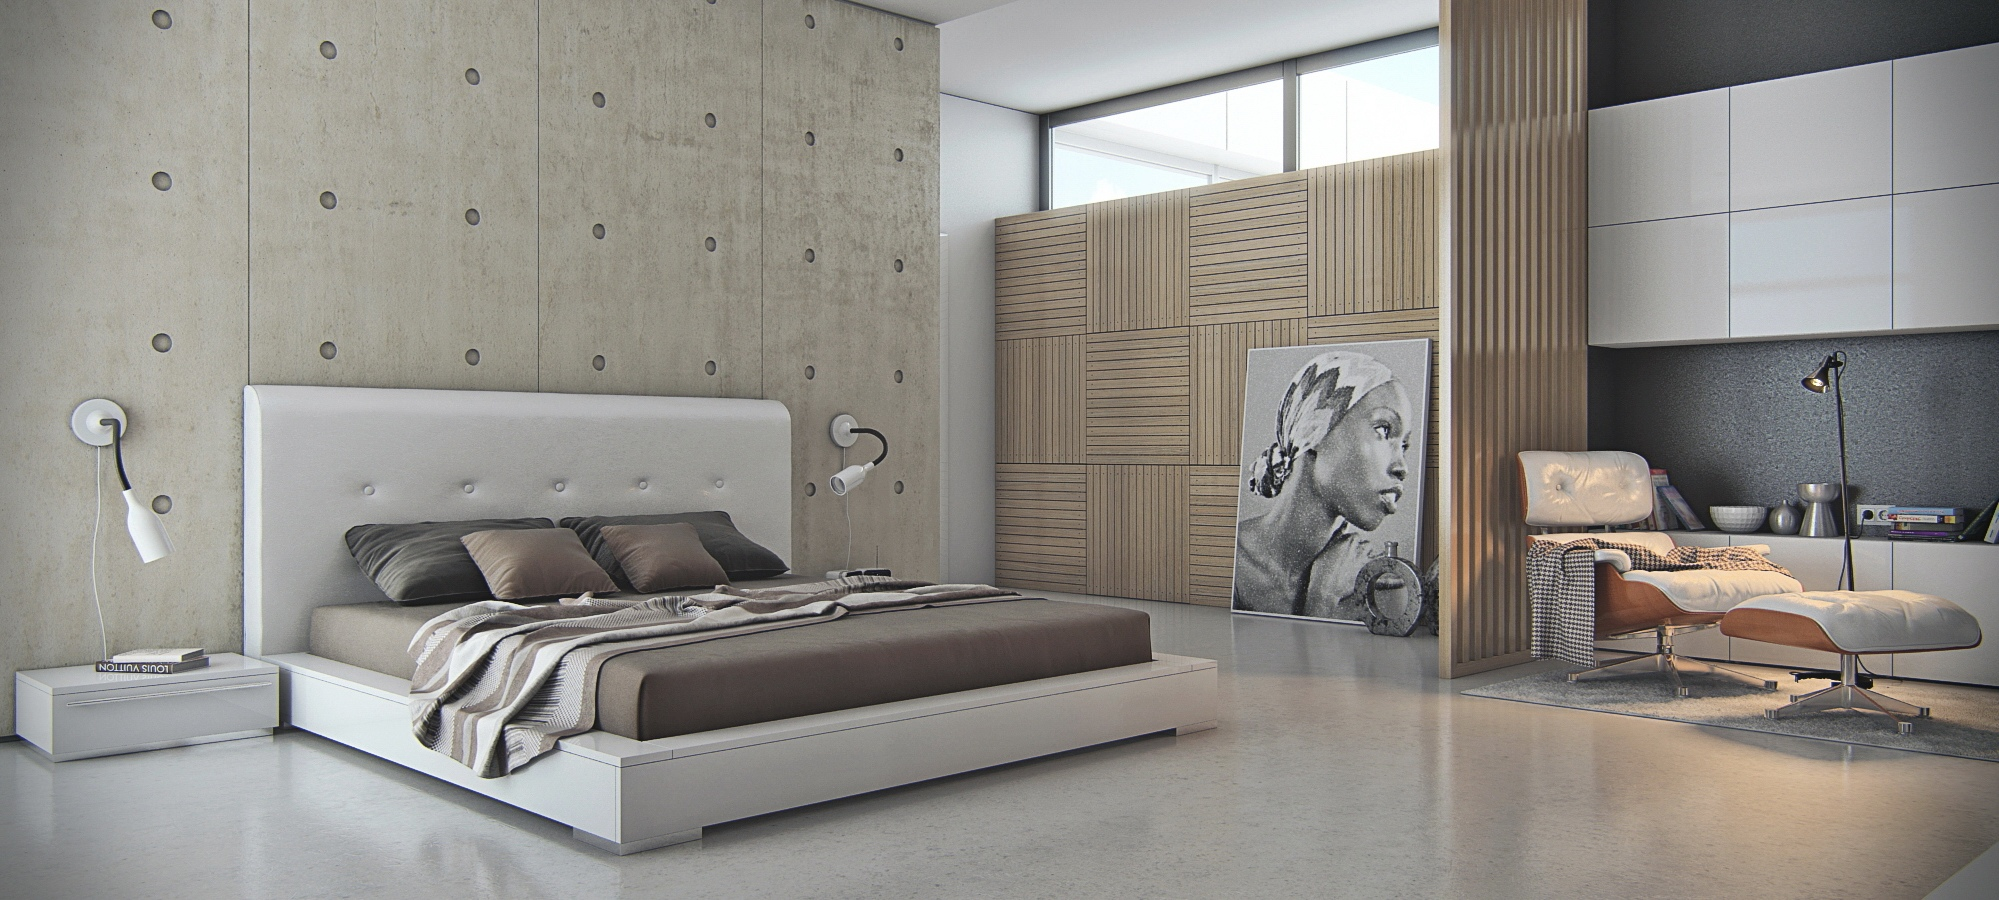 Master bedroom for Bedroom designs latest